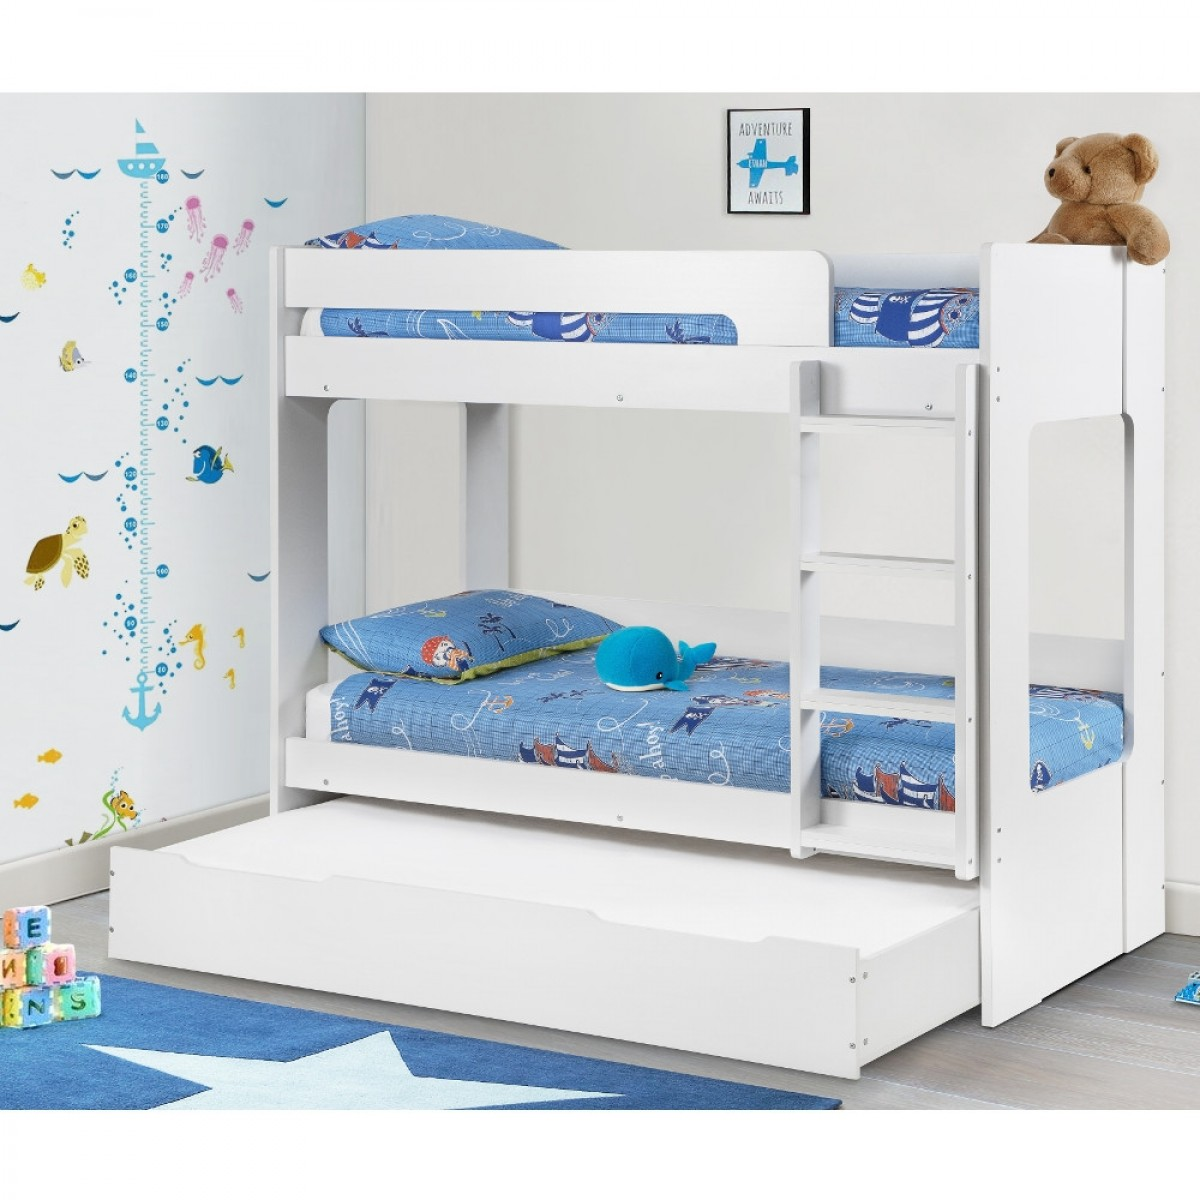 Ellie White Wooden Bunk Bed And Trundle Guest Bed Underbed Storage